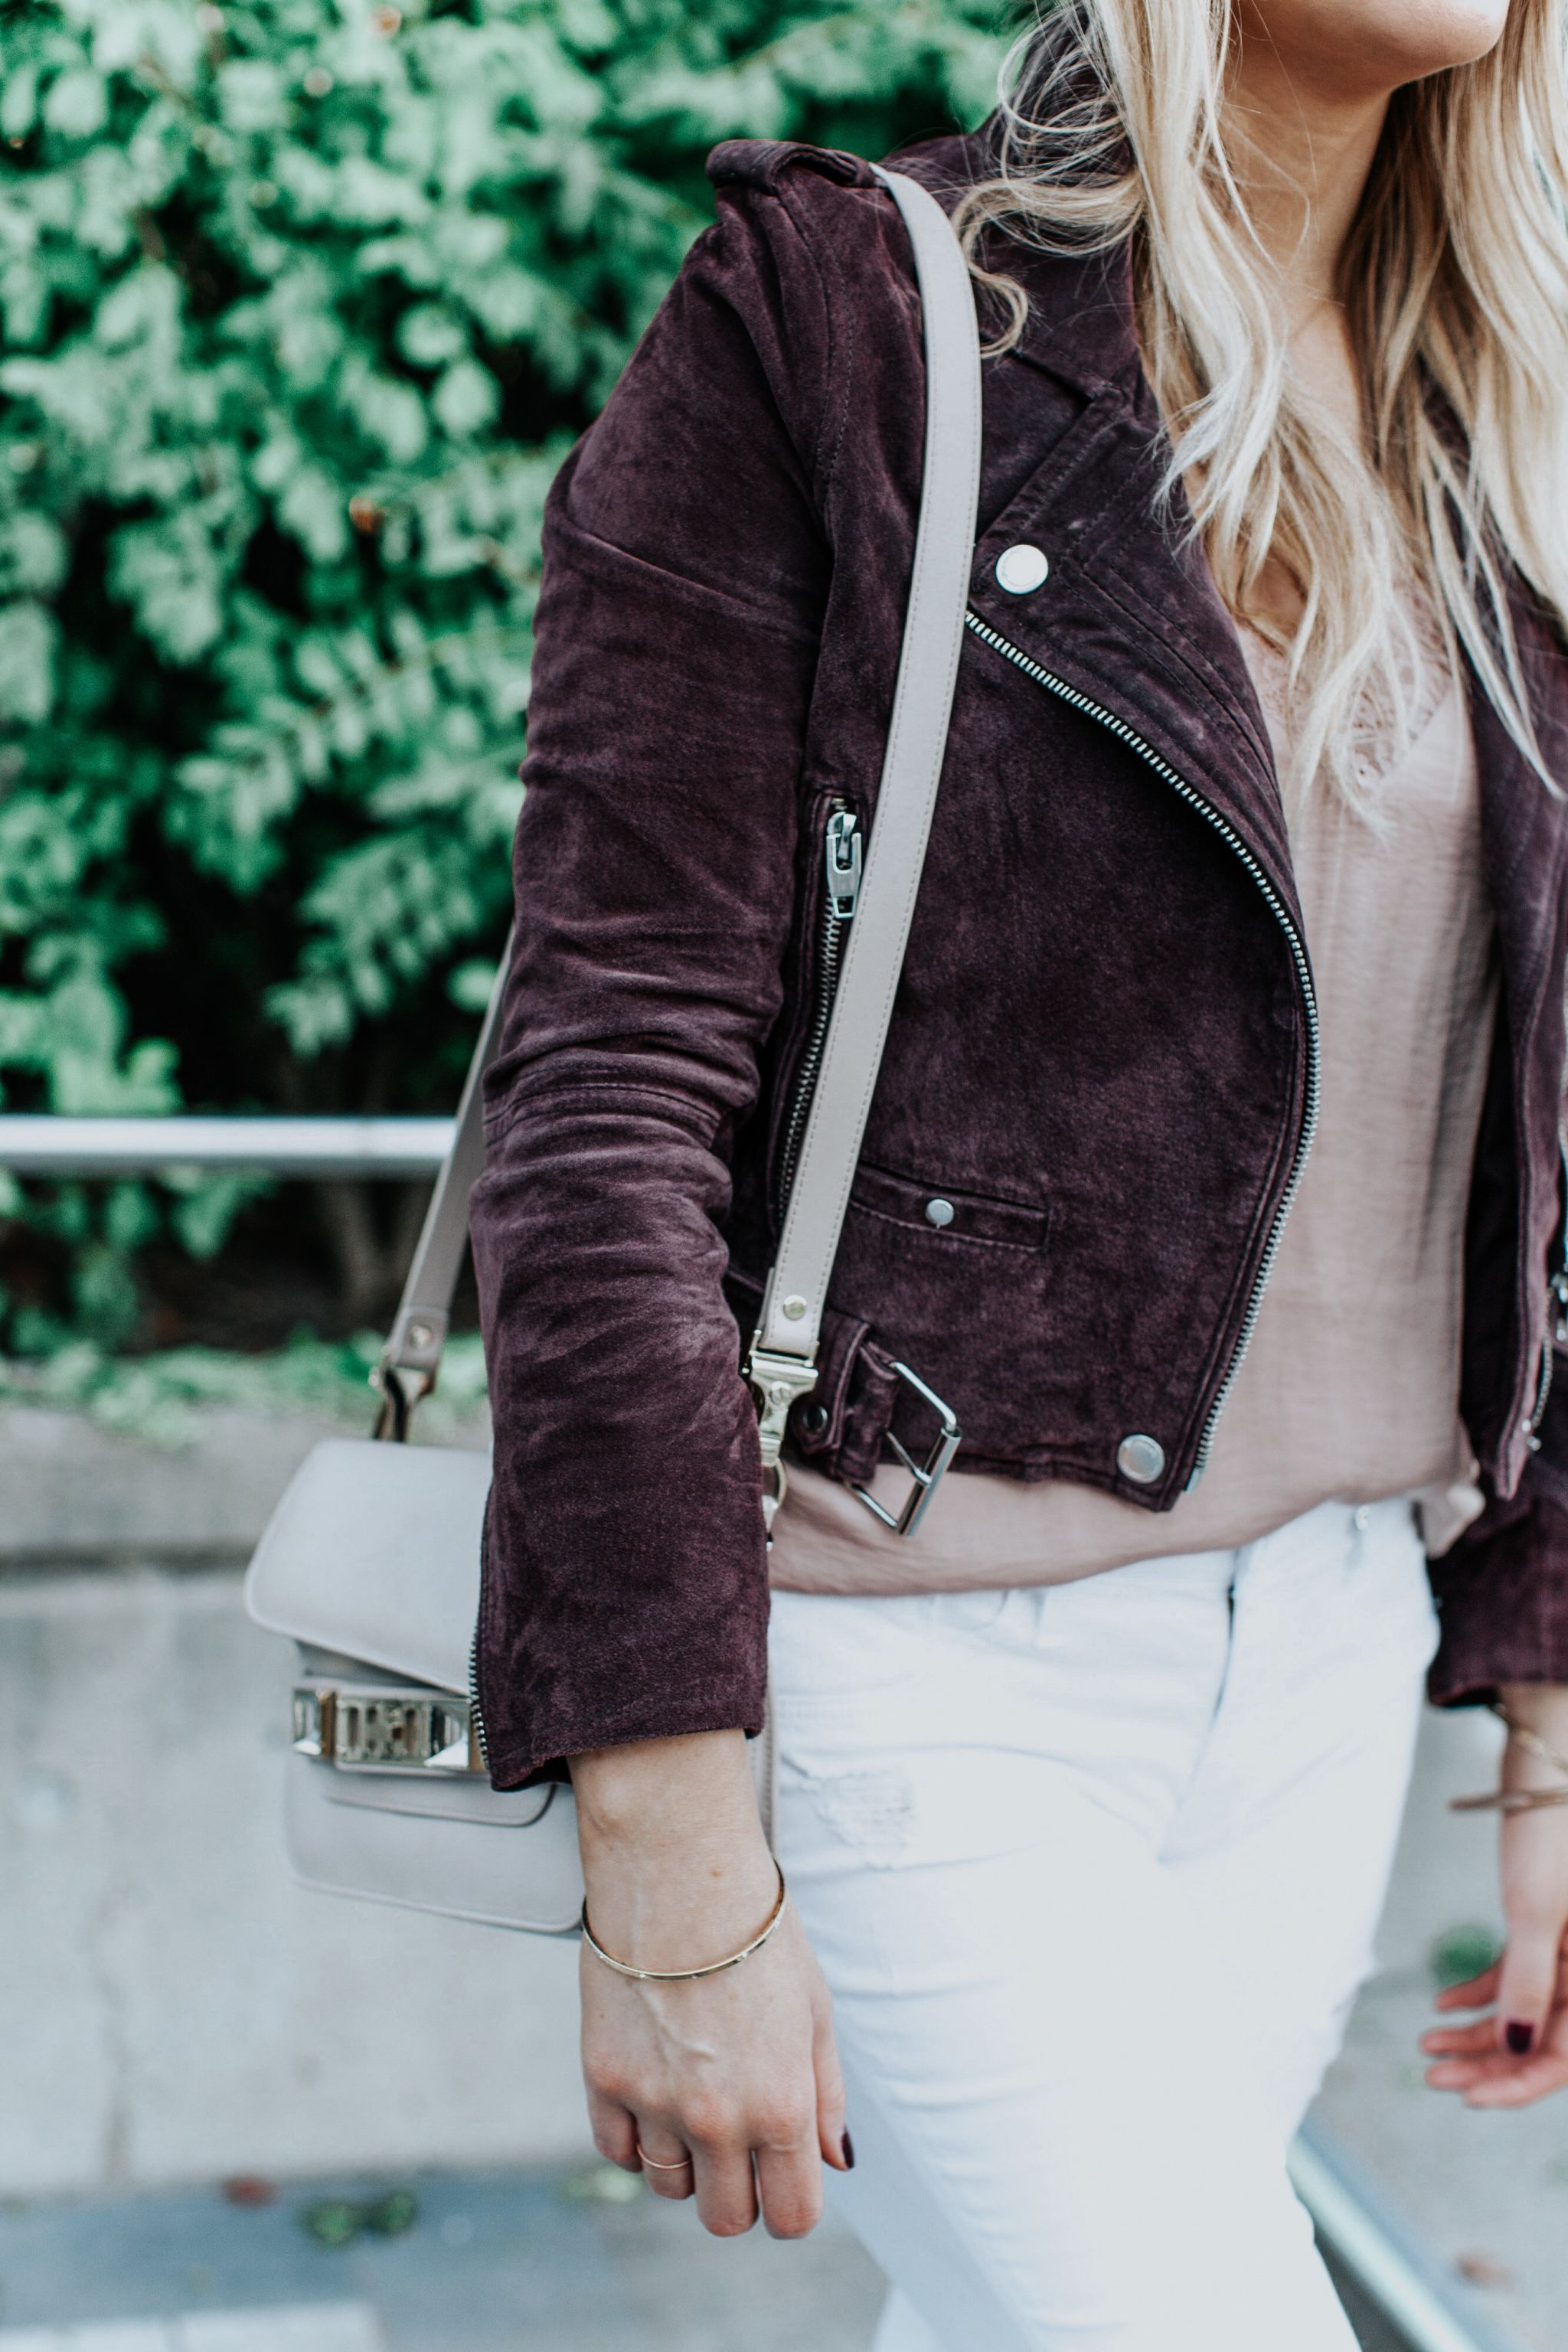 1 person, girl wearing plum suede jacket and white pants